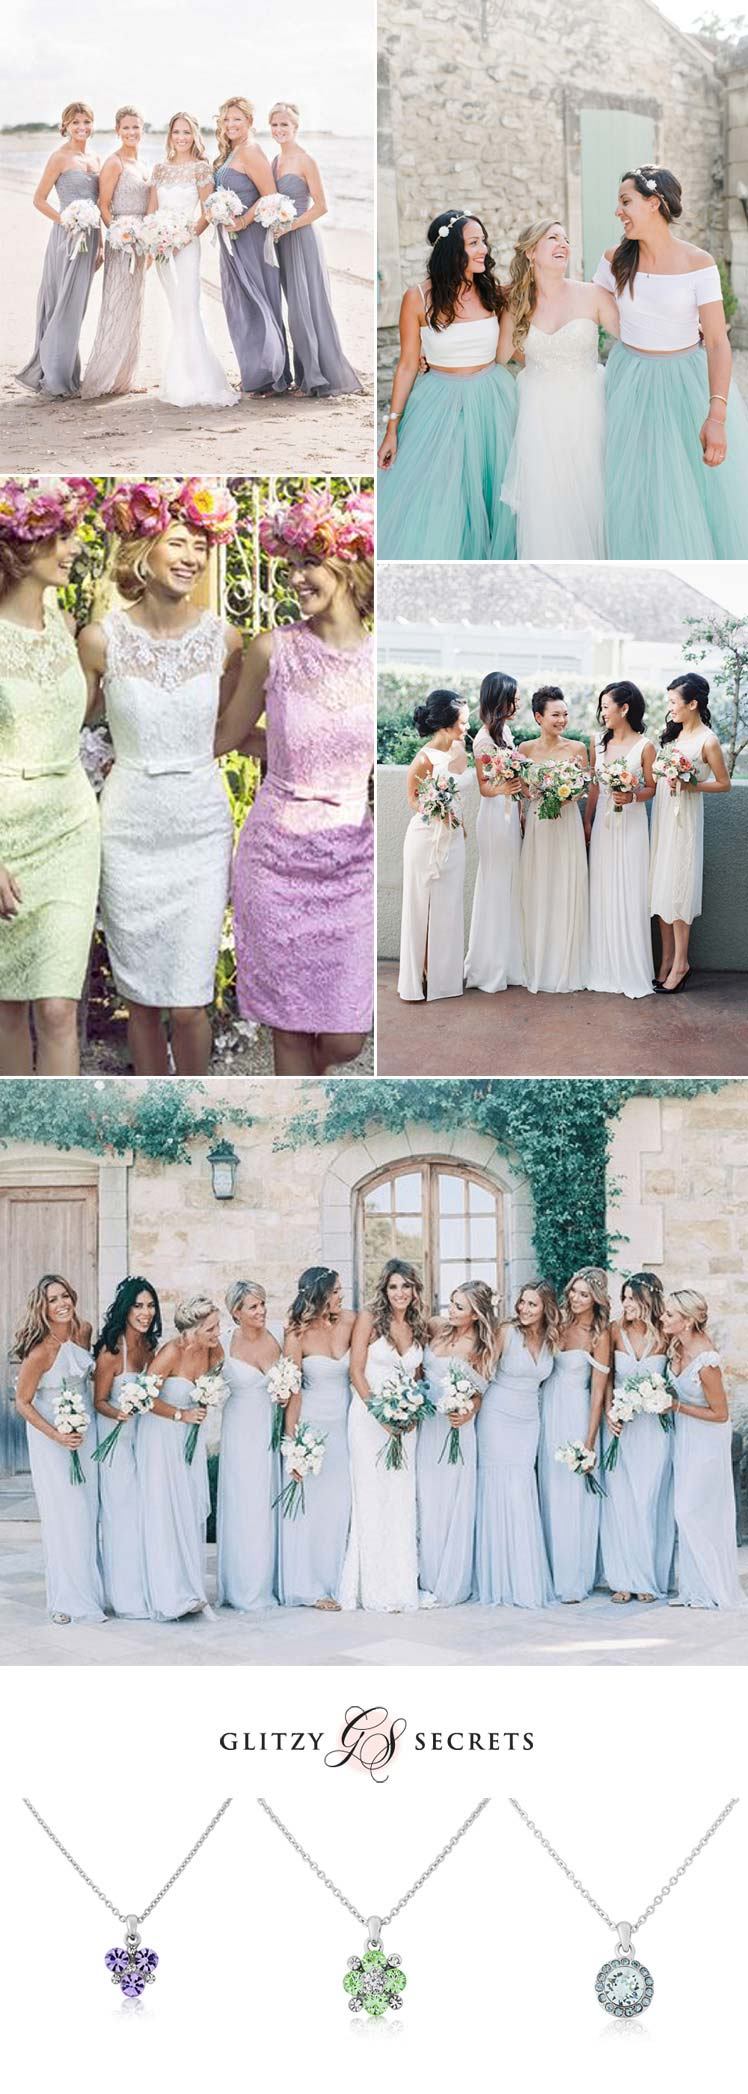 Beautiful Bridesmaid Dresses inspiration